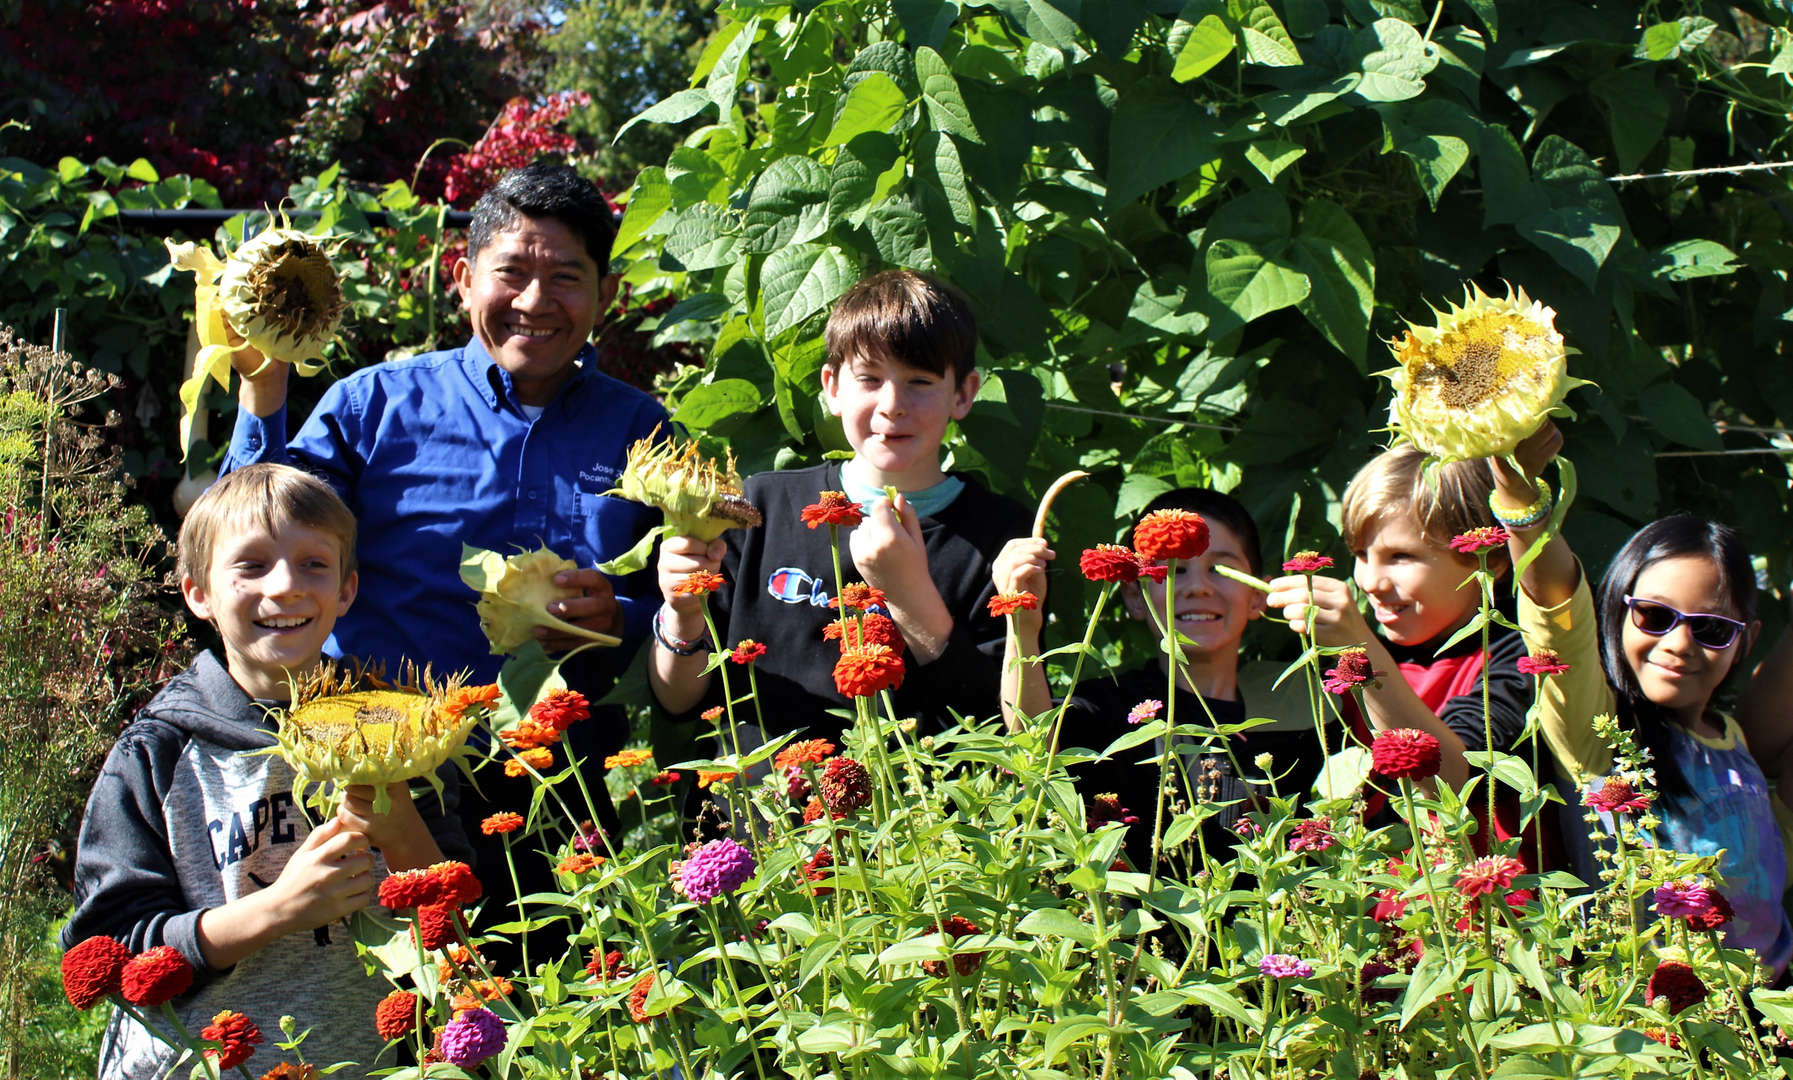 Students and the gardener hold sunflowers they will save seeds from.